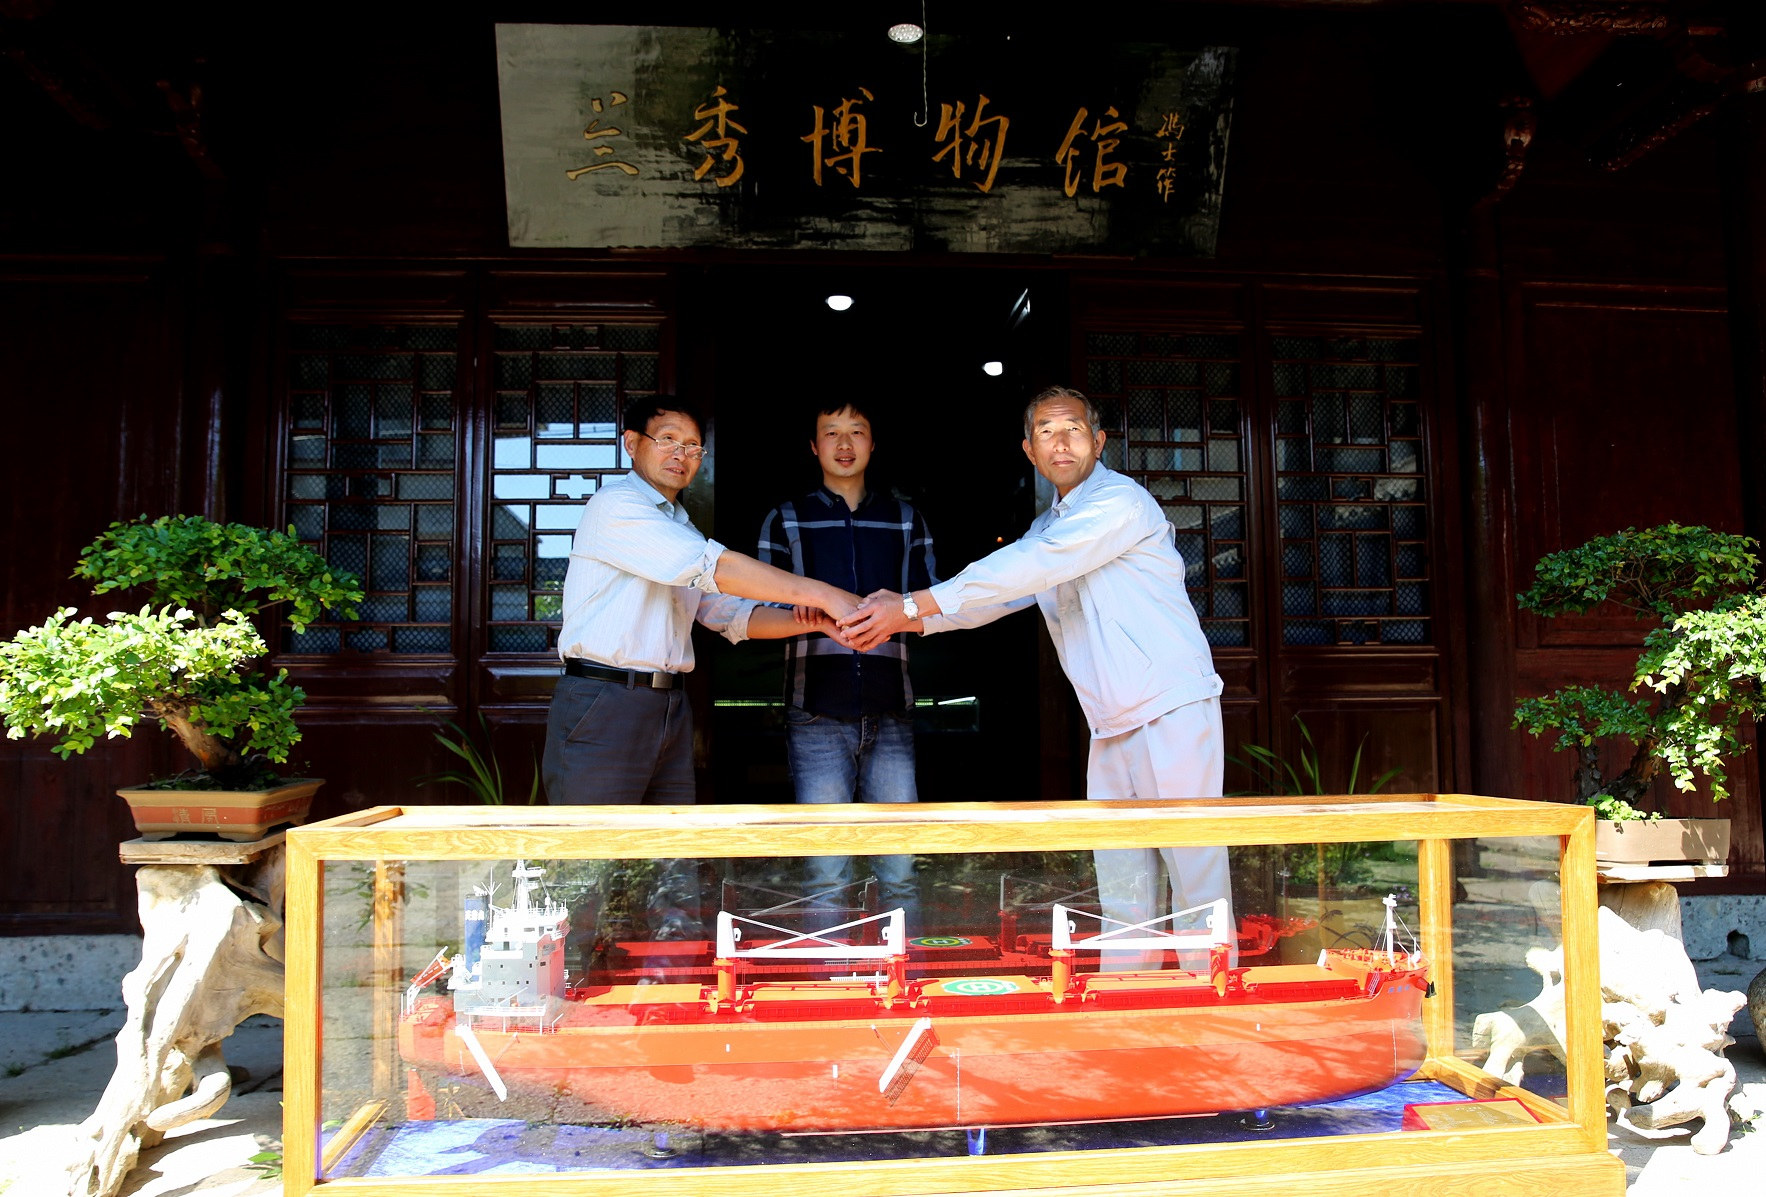 A model 58,000-ton bulk carrier ship presented to Lanxiu Museum on Xiushan Island of Zhoushan City in Zhejiang Province – Donated by TSUNEISHI GROUP (ZHOUSHAN) SHIPBUILDING Inc.